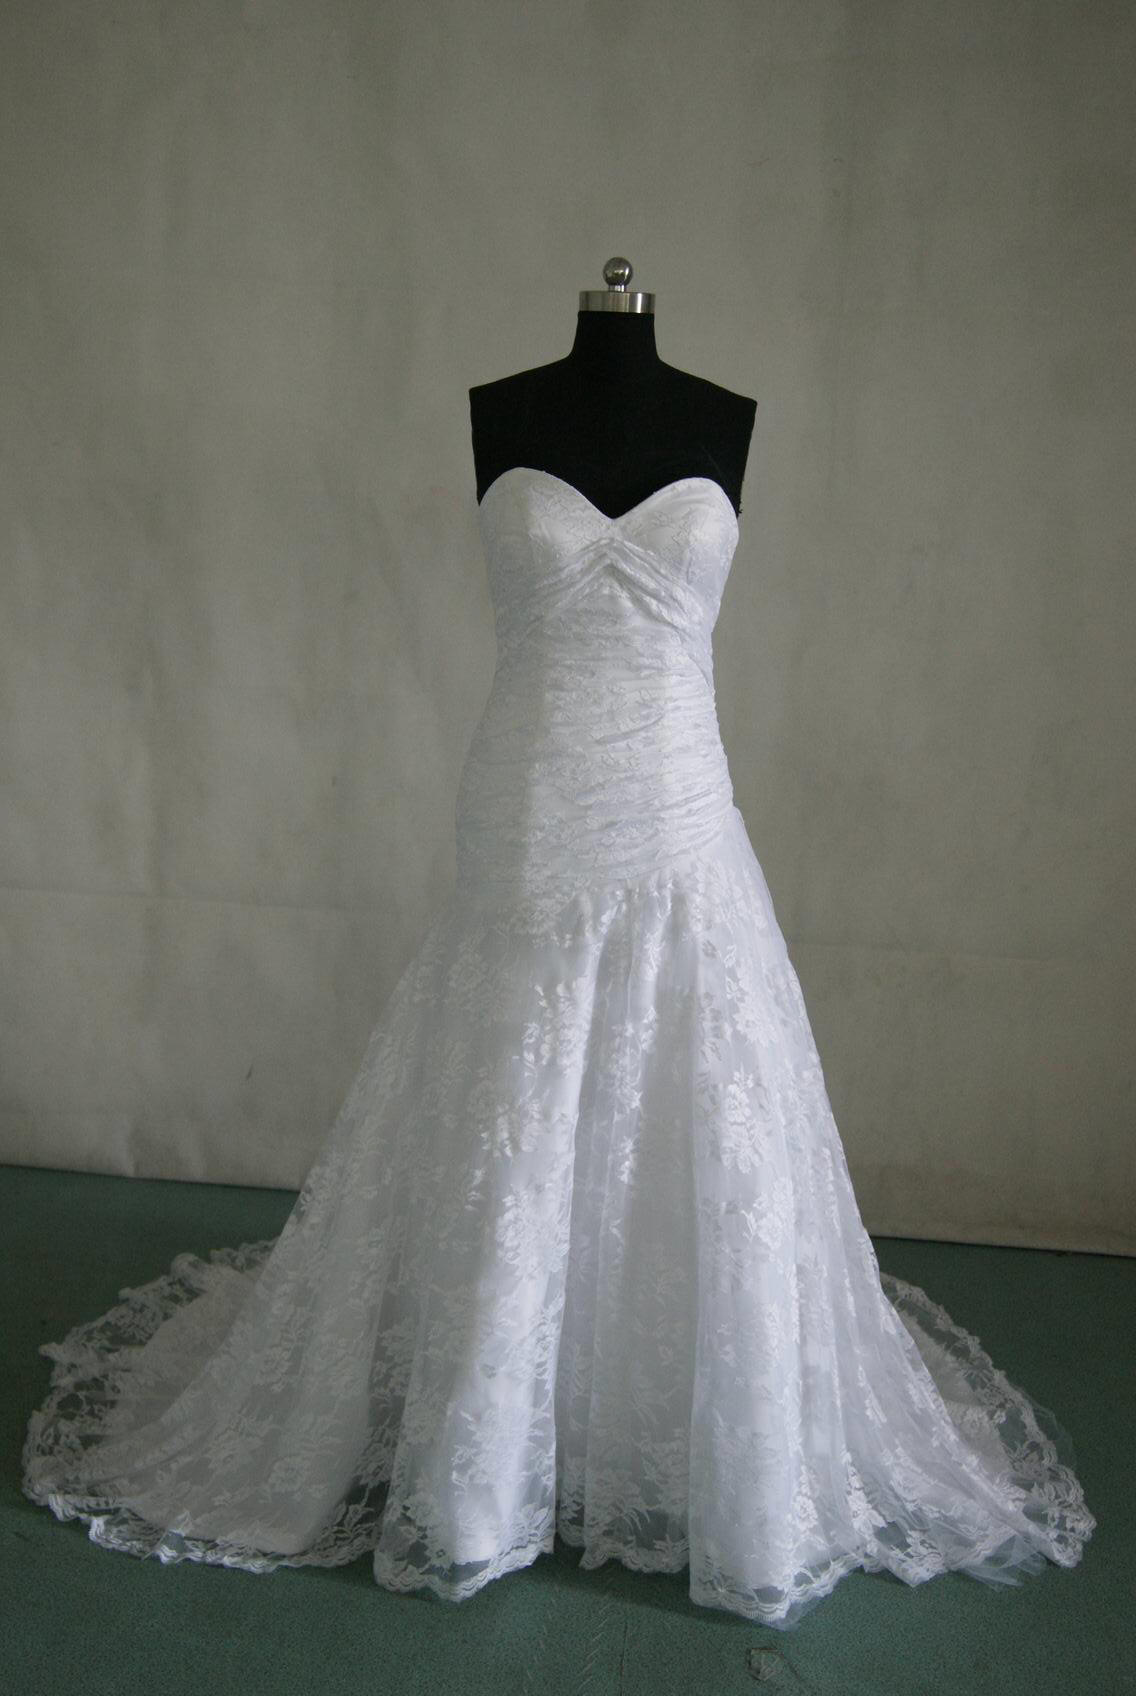 WD floral lace wedding dress White lace wedding gown with strapless sweetheart neckline